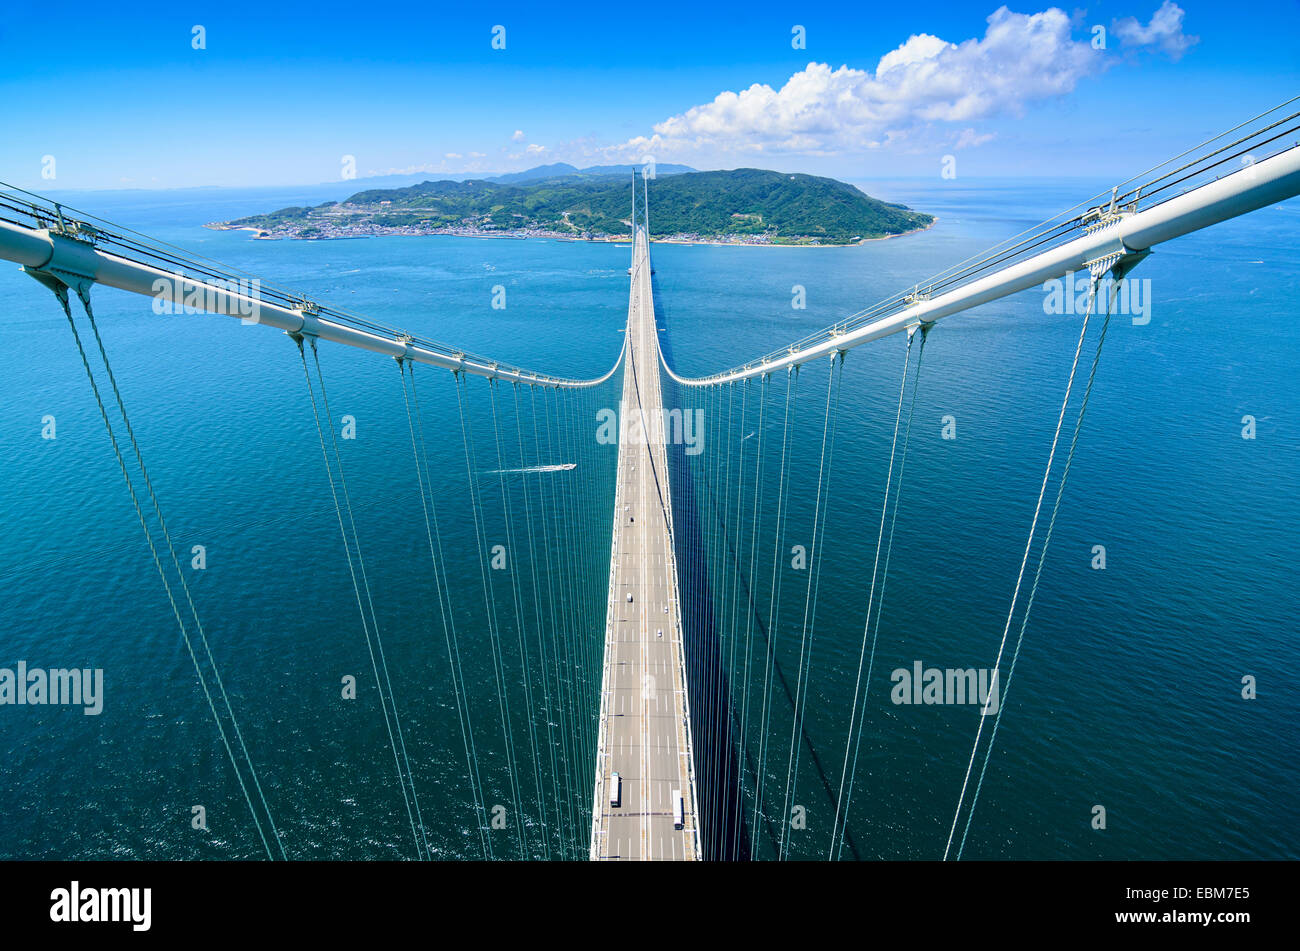 Awaji Island, Japan viewed from Akashi Kaikyo Bridge Tower. - Stock Image